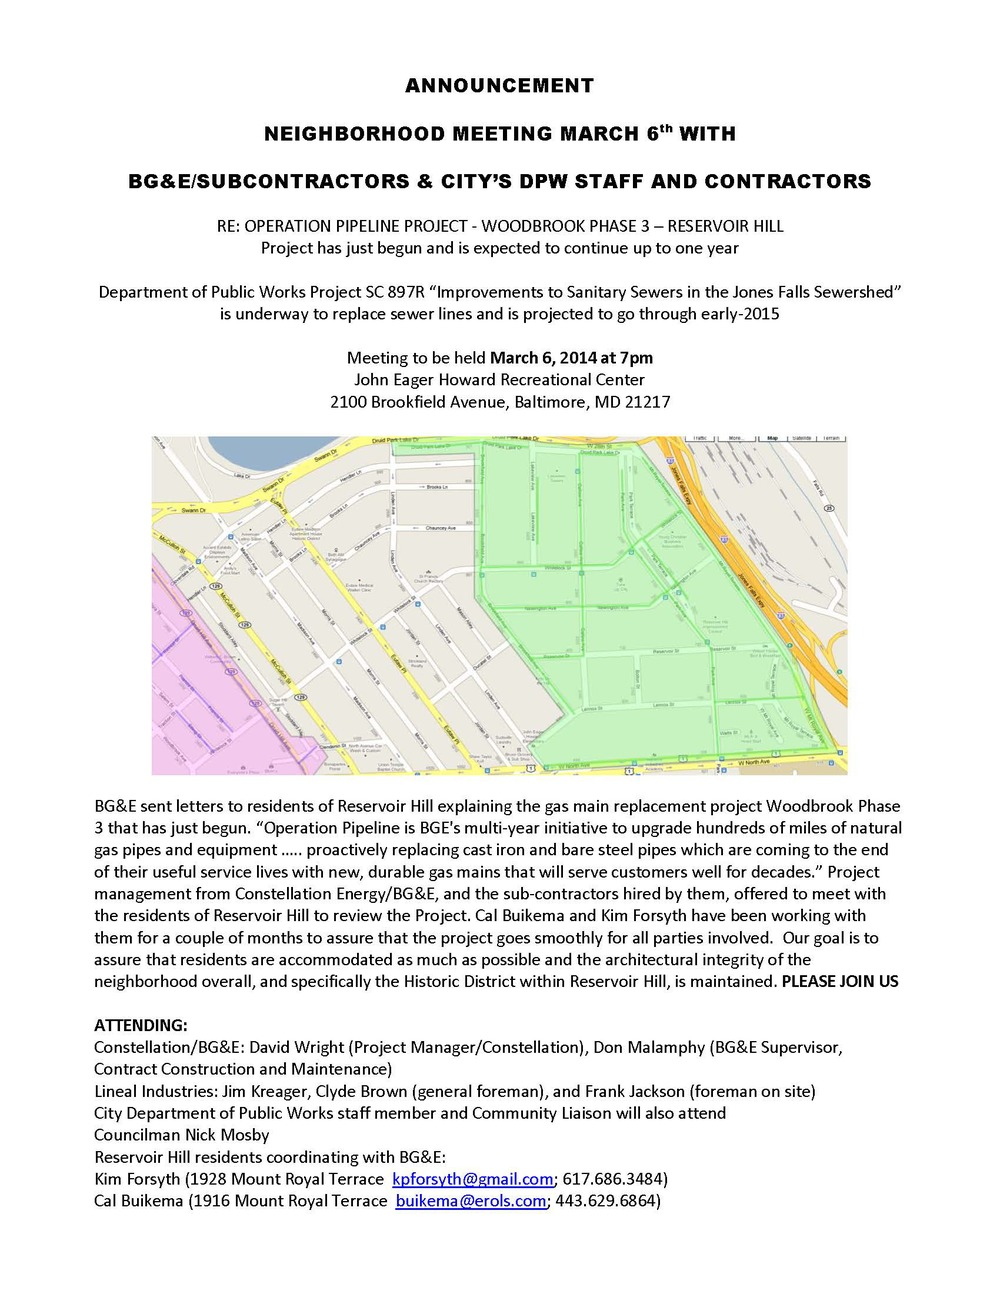 BGE March 6 meeting flyer REVISED